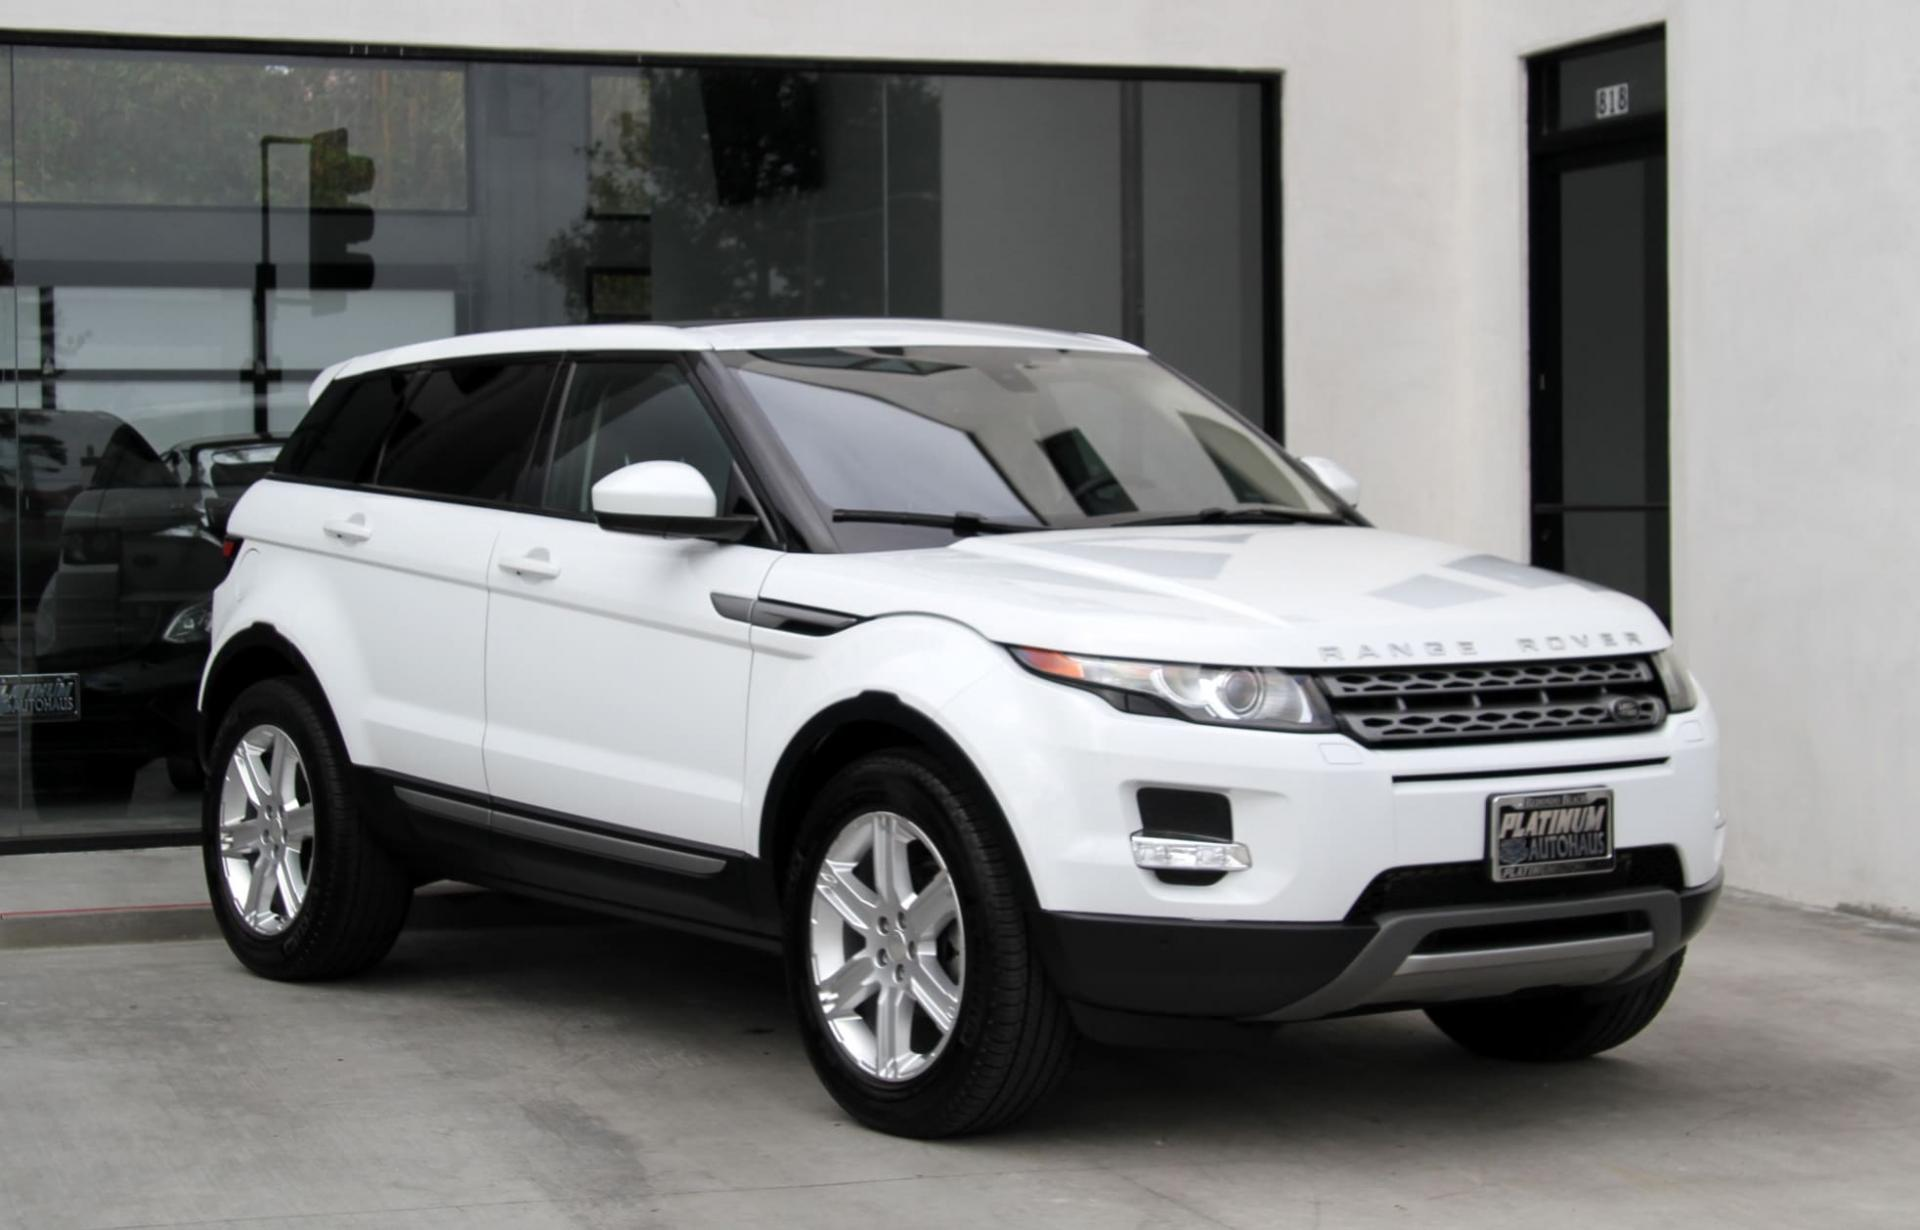 2014 land rover range rover evoque pure plus stock 6234 for sale near redondo beach ca ca. Black Bedroom Furniture Sets. Home Design Ideas